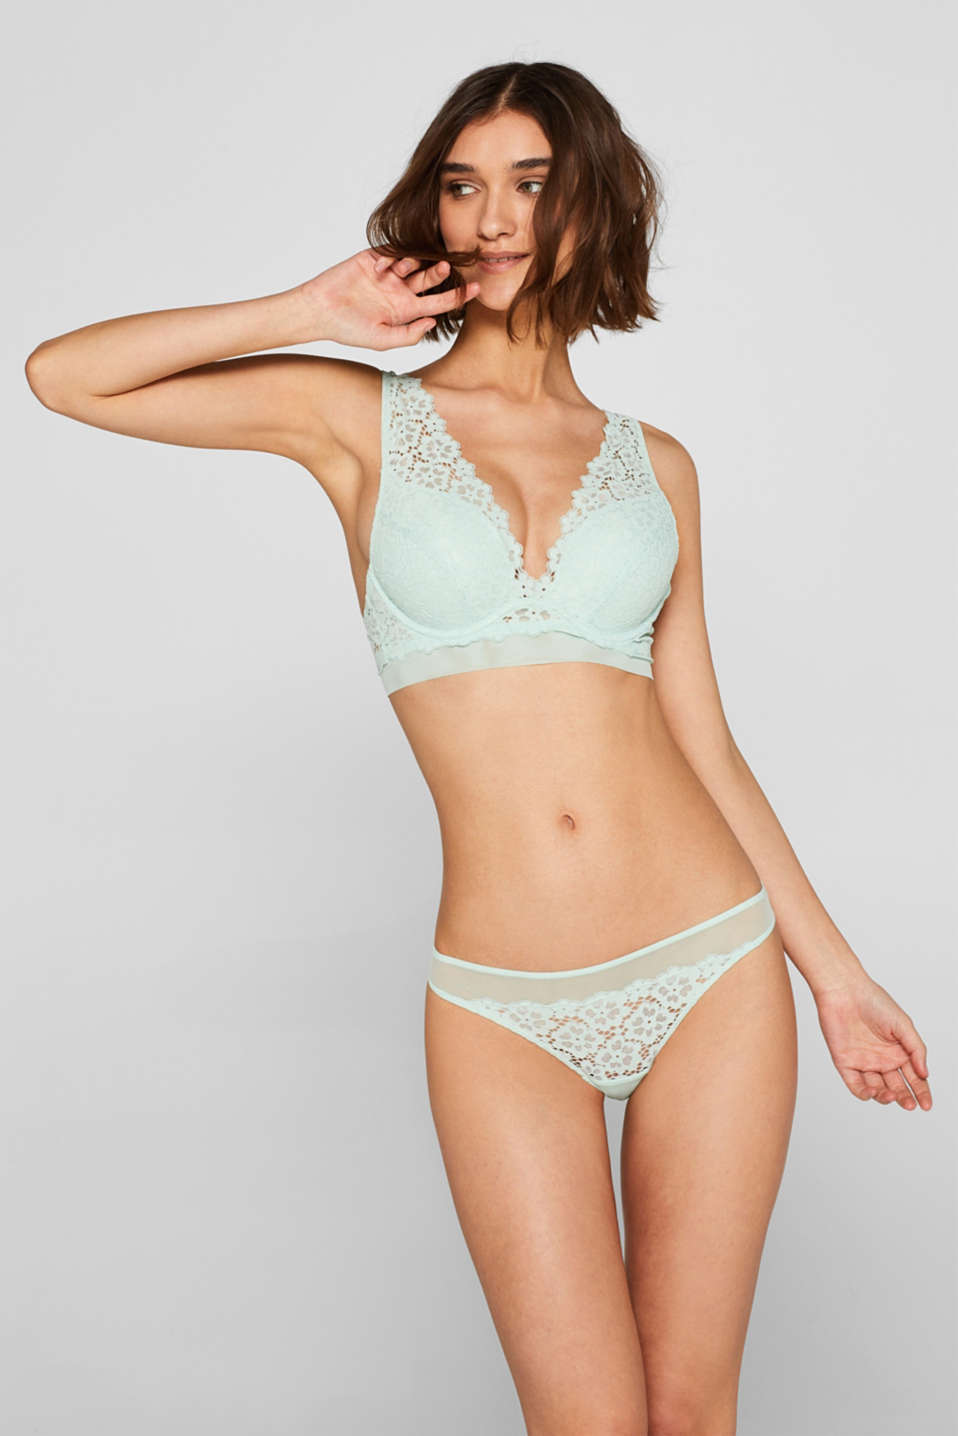 Esprit - Push-up bra made of lace in a crocheted look